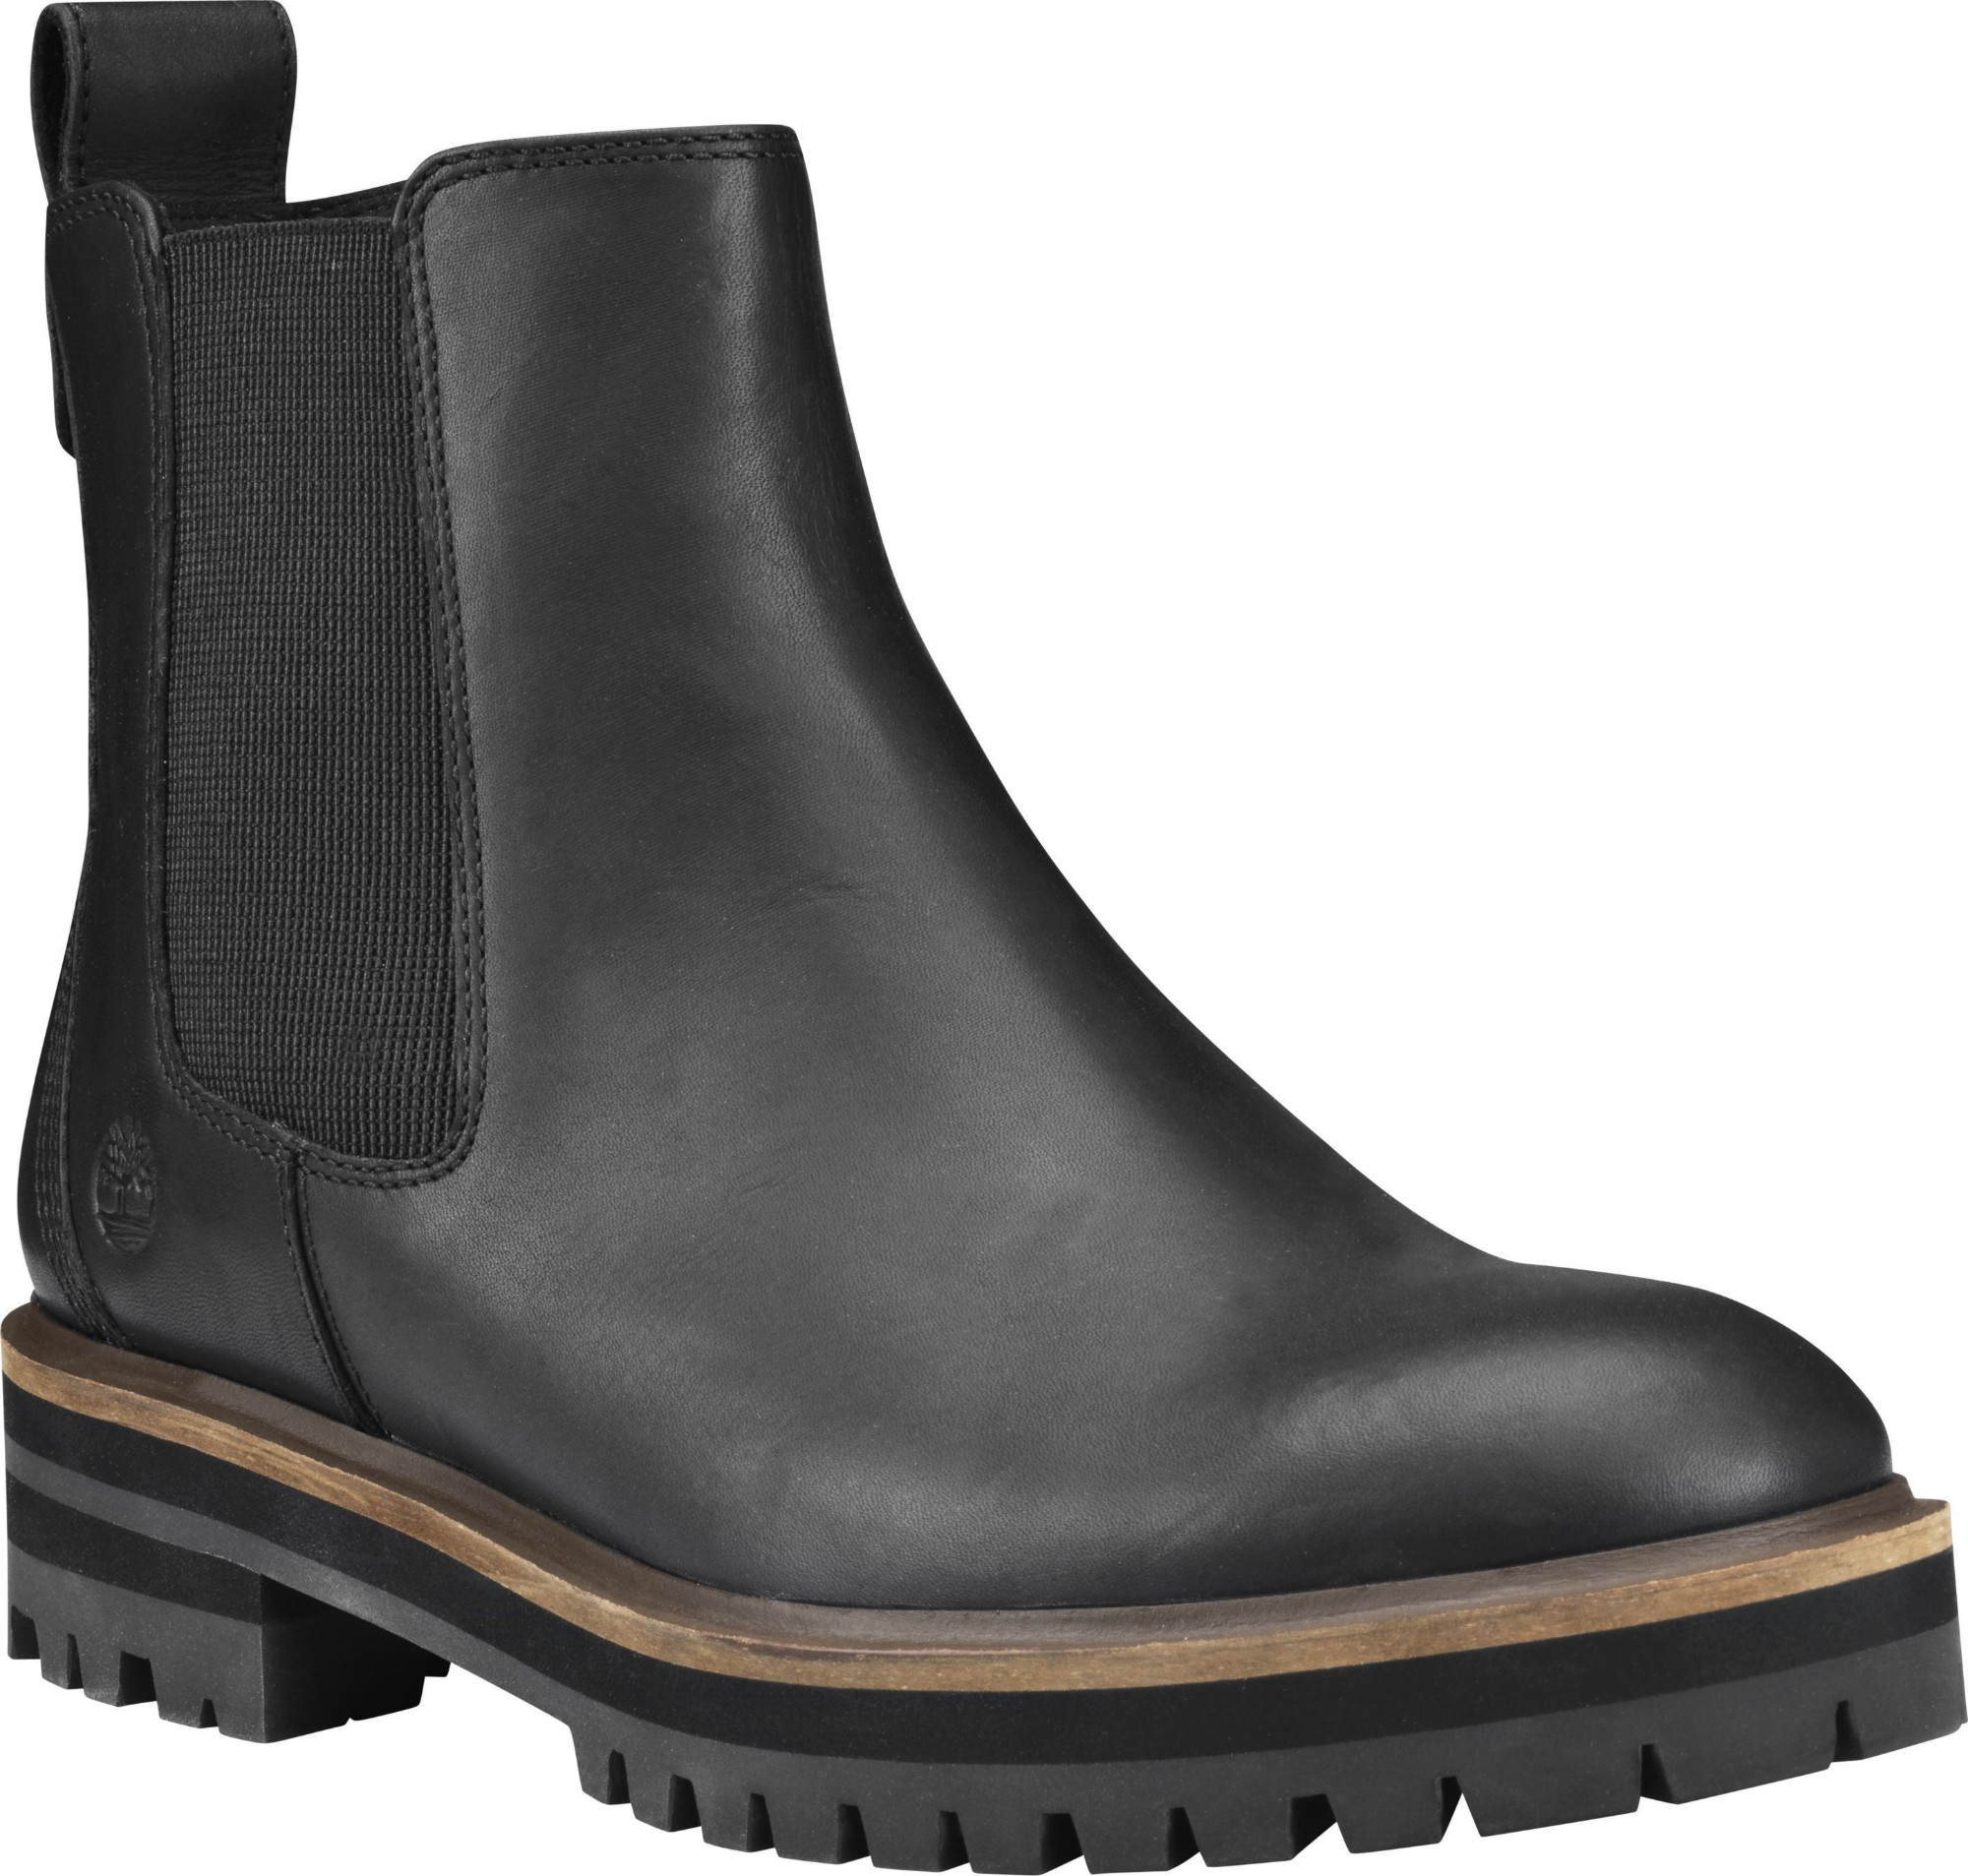 Timberland London Square Double Gore Chelsea Black Full-Grain 40